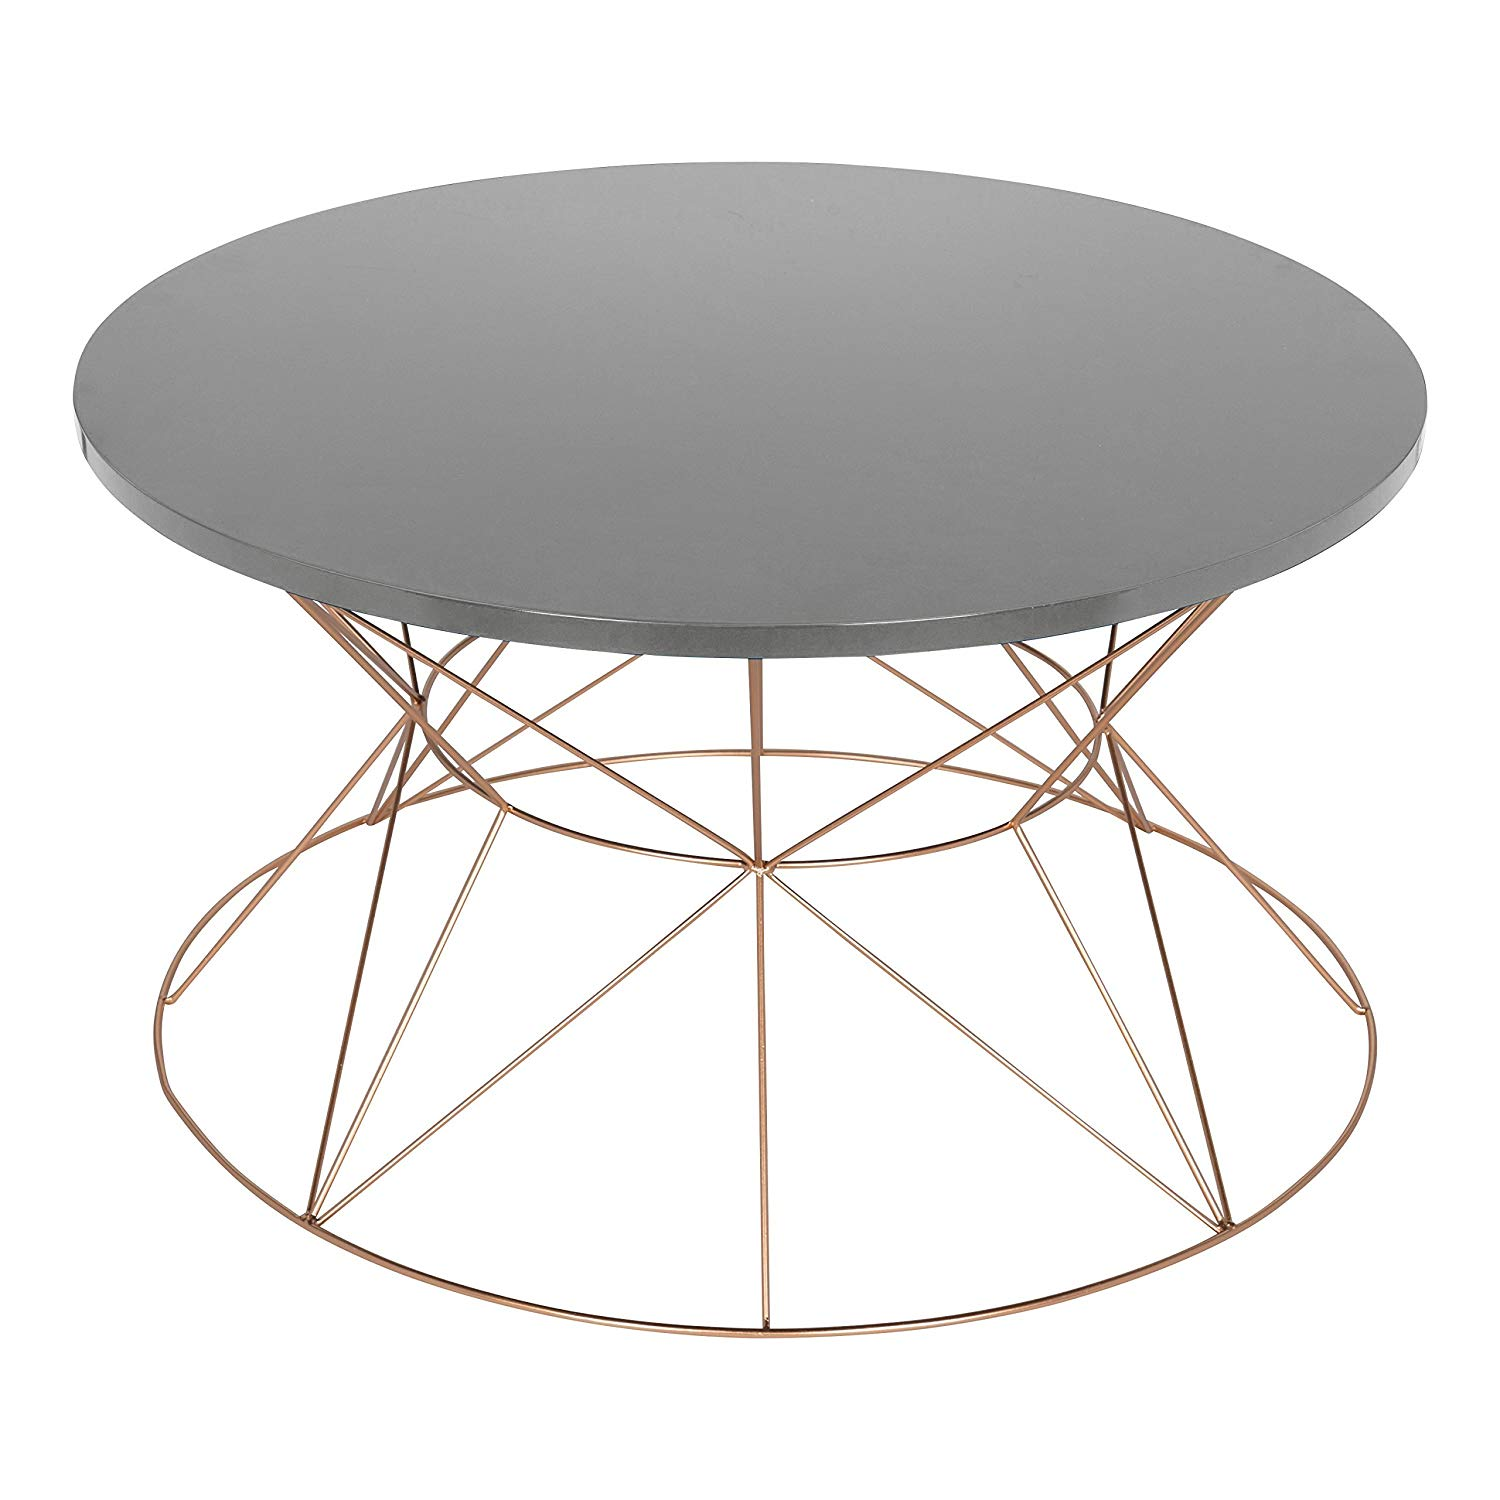 kate and laurel mendel round metal coffee table gray accent top with rose gold base kitchen dining pier one imports patio furniture small decorative chest drawers red black end